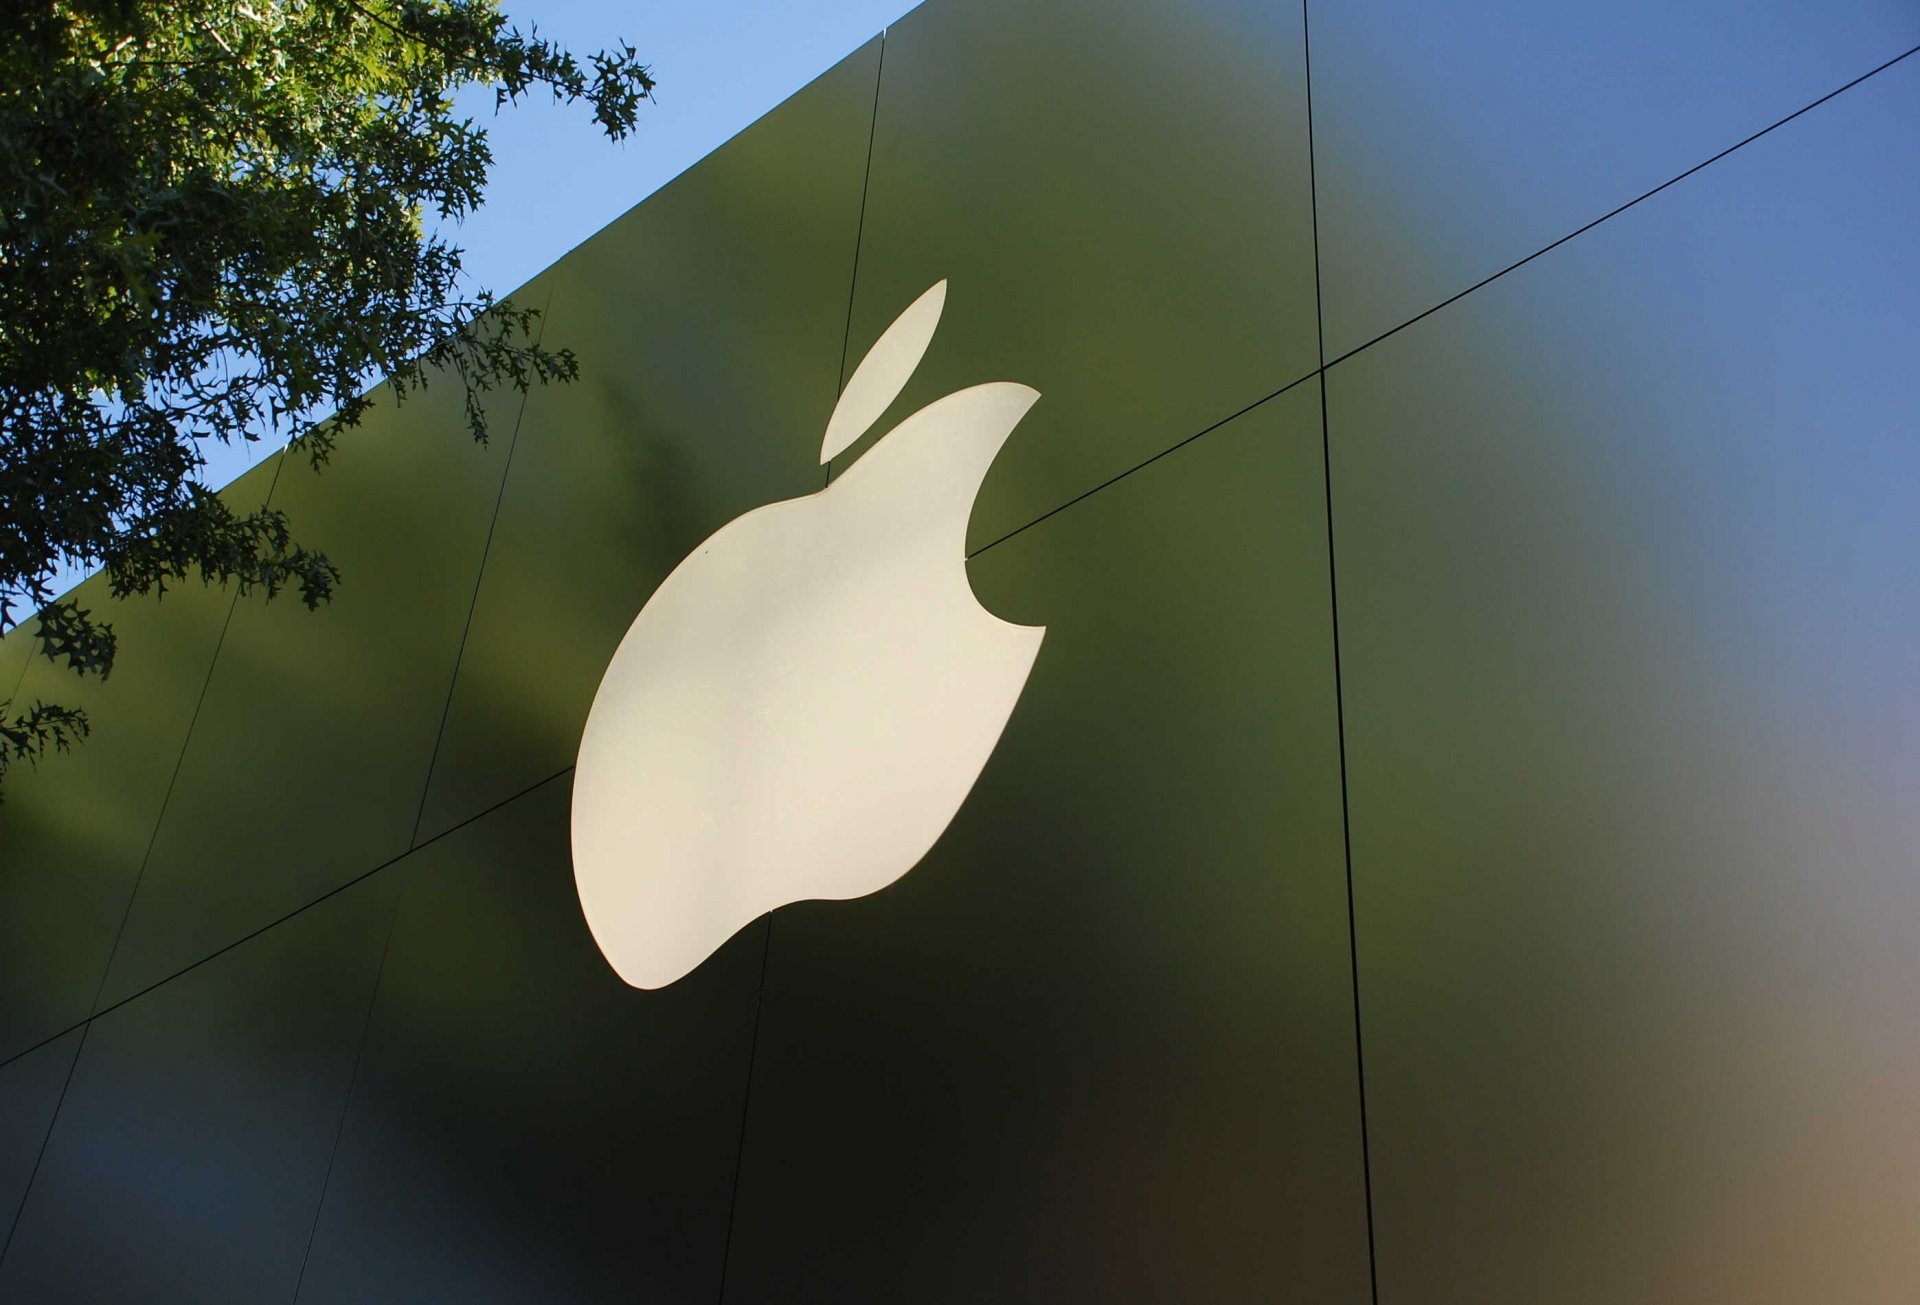 Will Apple arrive in Vietnam as its new nest?